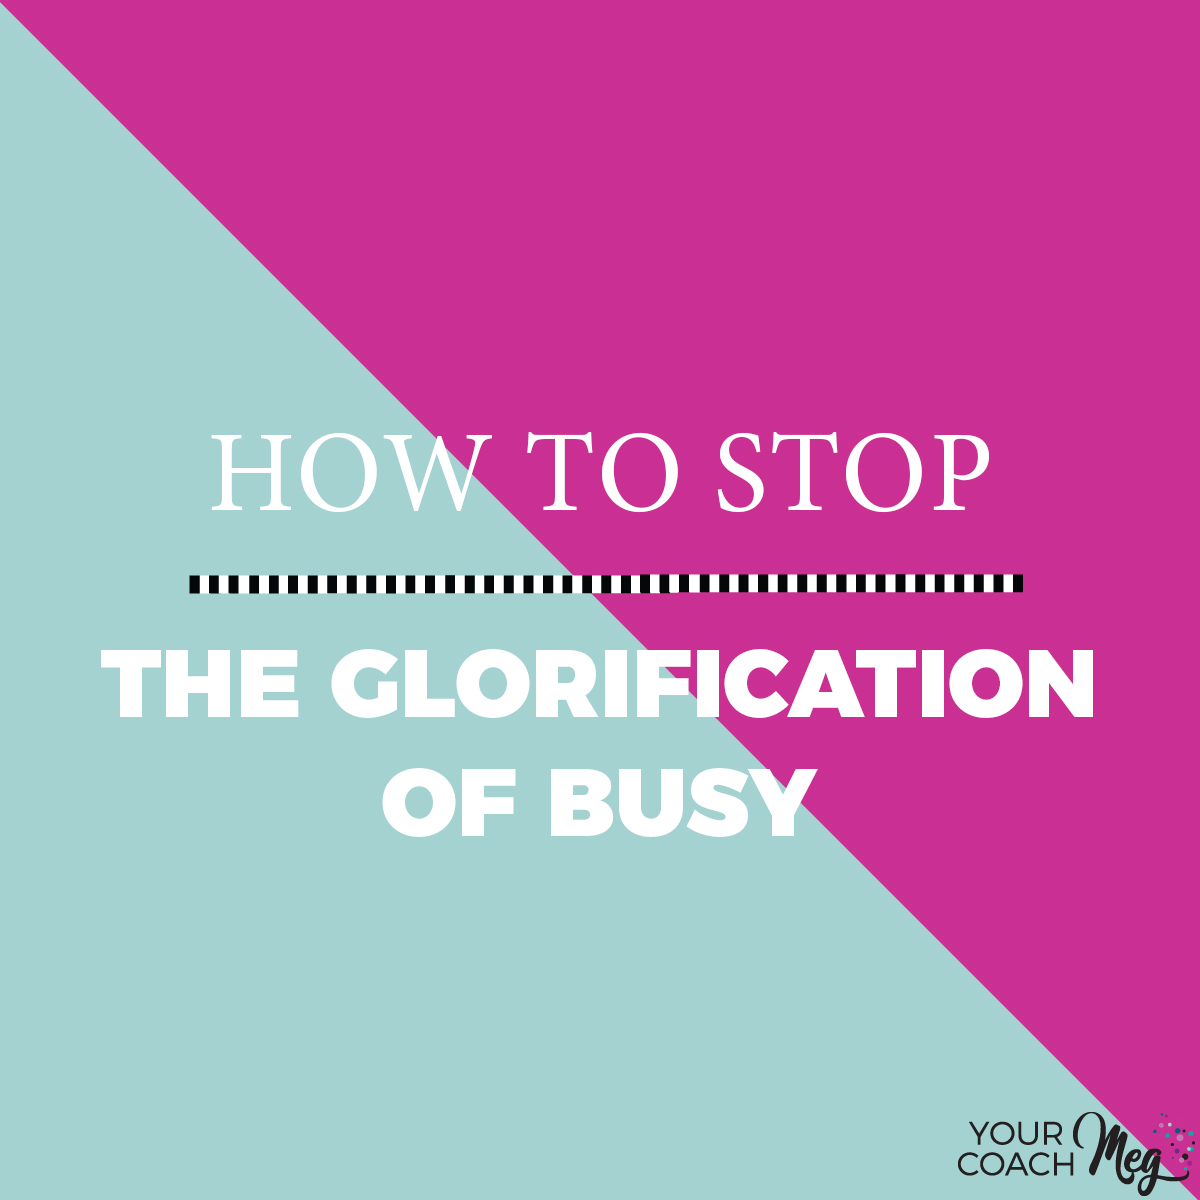 HOW TO STOP THE GLORIFICATION OF BUSY